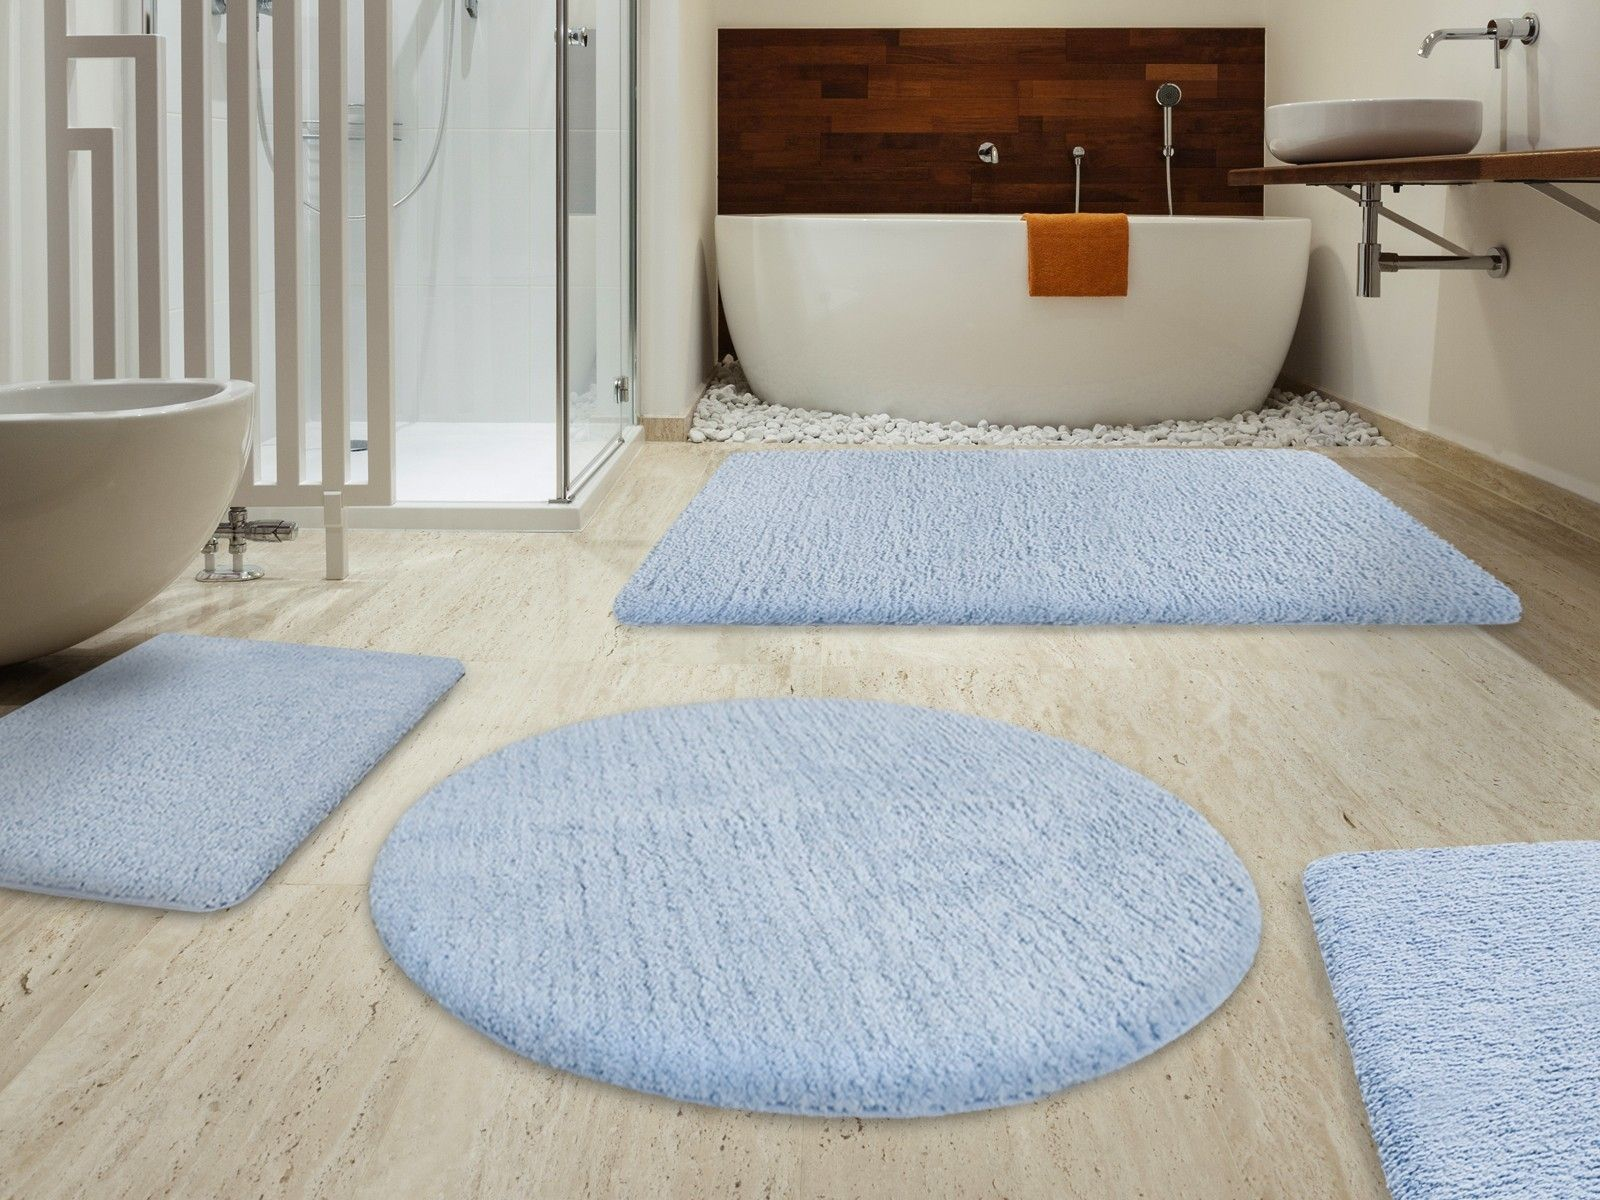 A Beautiful Light Blue Modern Bath Rugs Sets Beautiful Bathroom